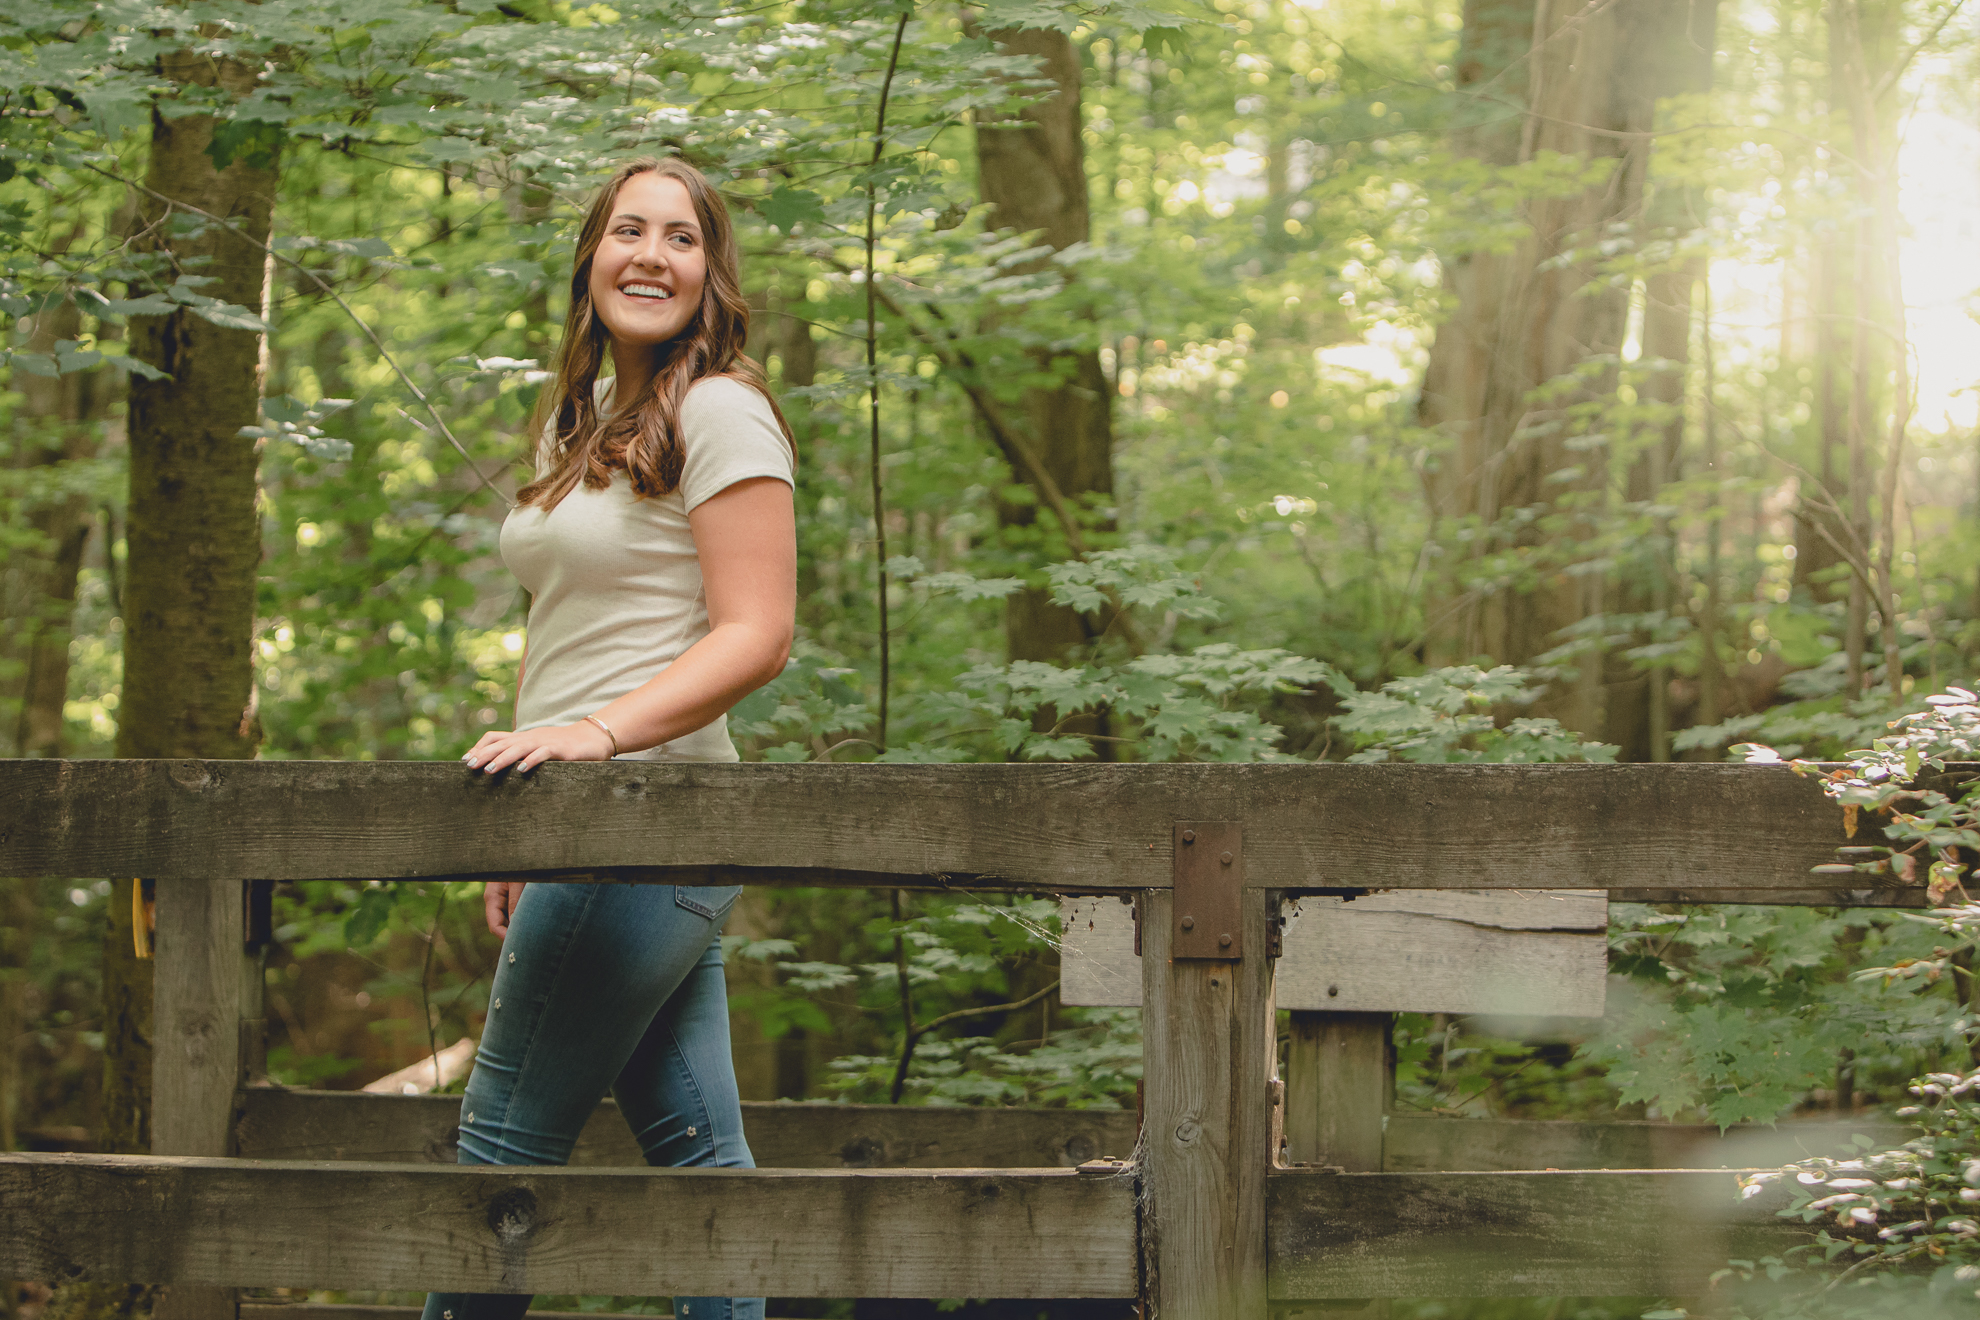 Tessa laughs on bridge during senior portrait photography session in Long Point State Park in WNY